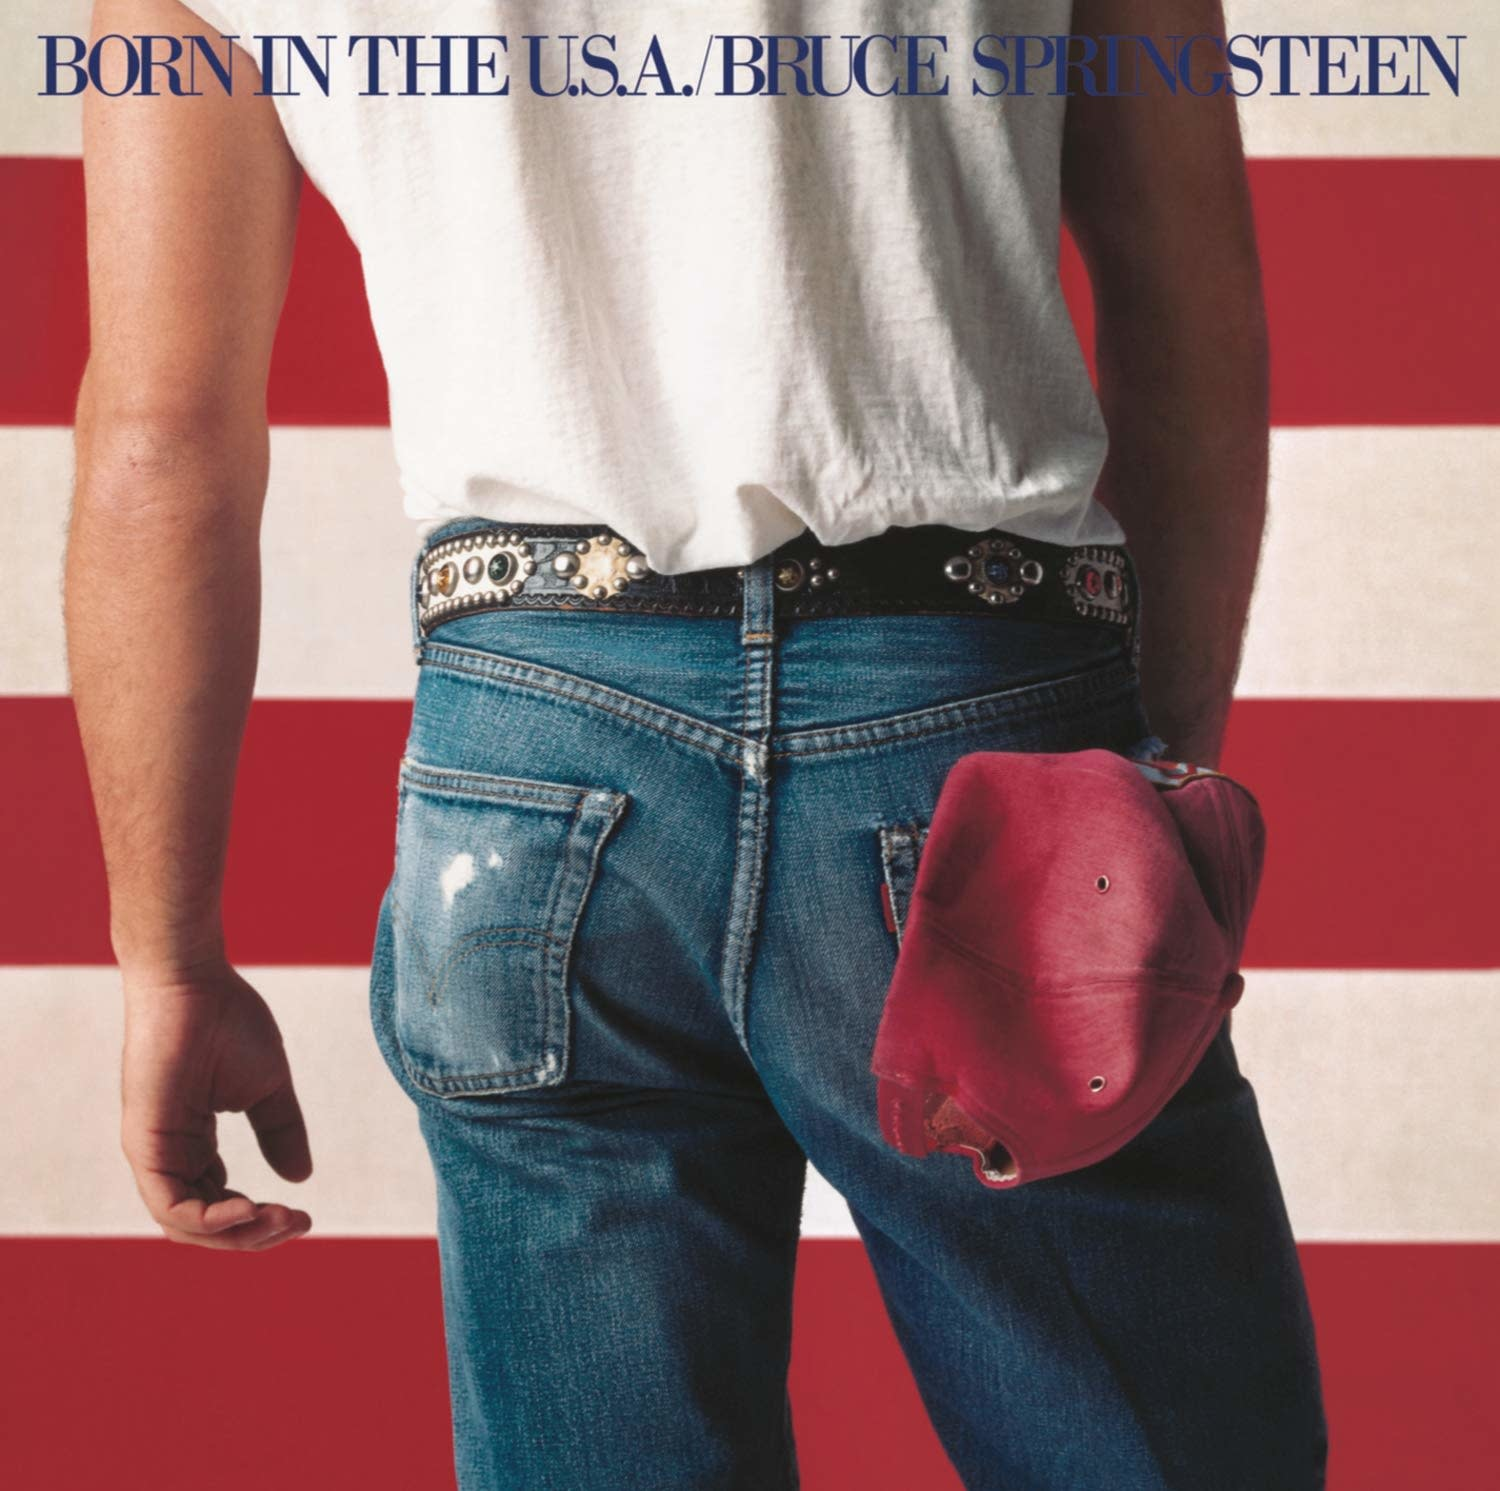 Bruce Springsteen • Born in the U.S.A.-1